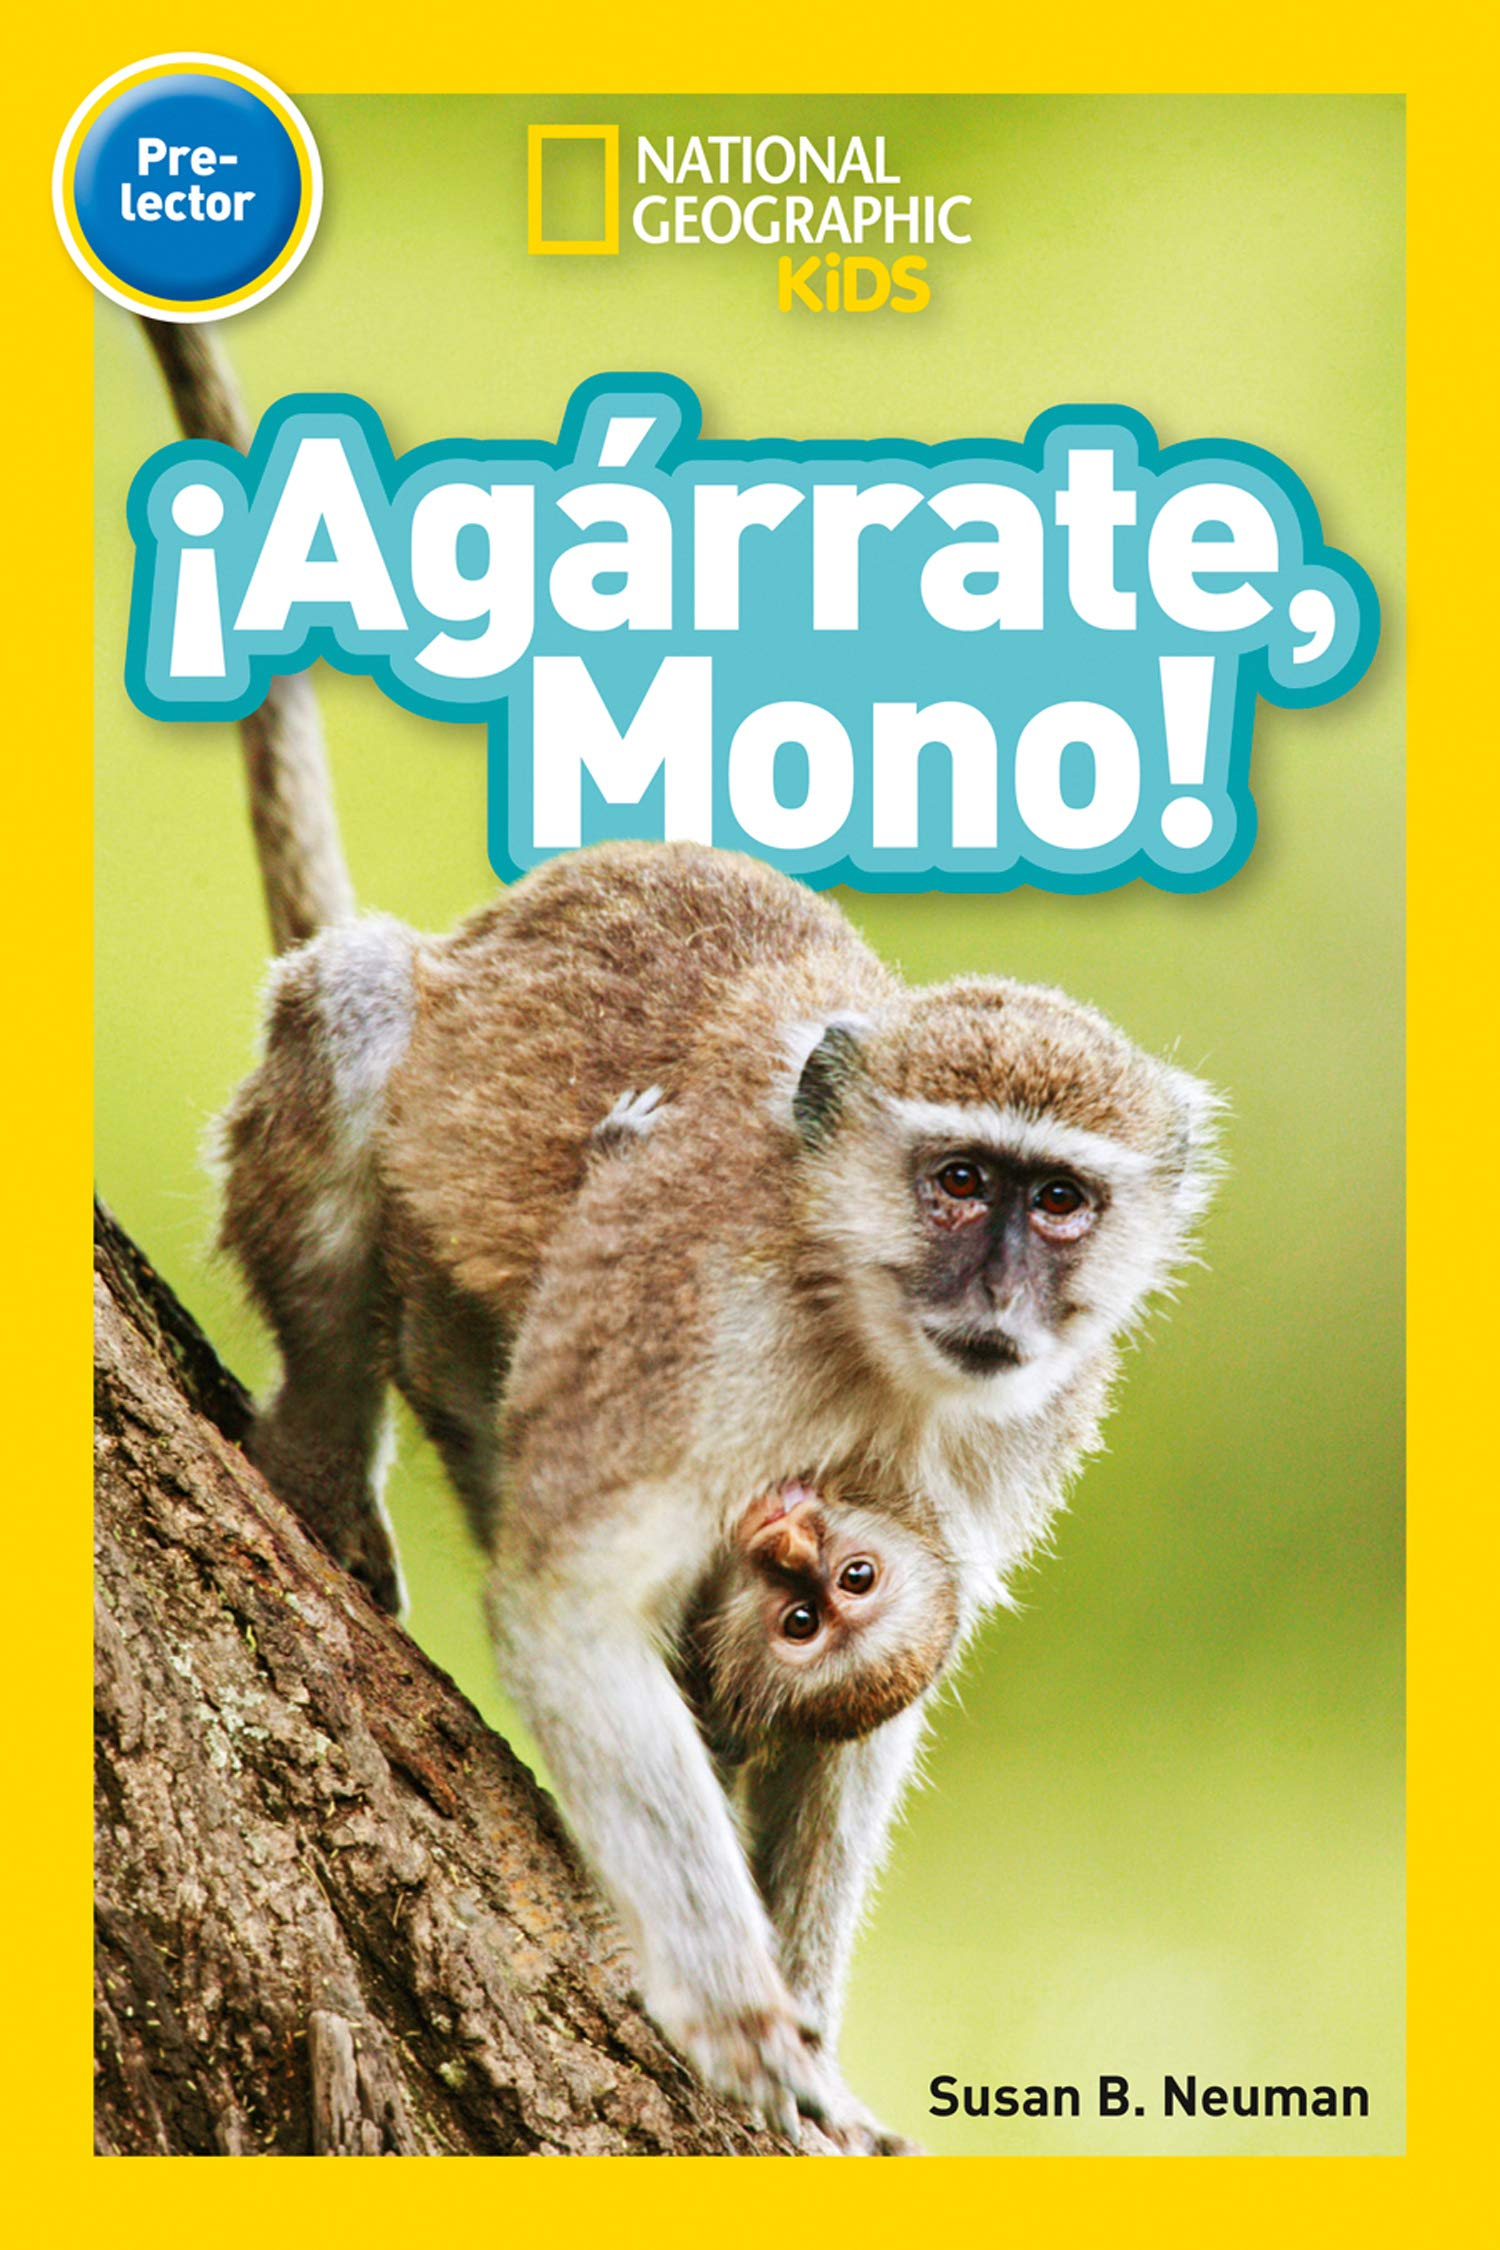 Download National Geographic Readers: ¡Agárrate, Mono! (Pre-reader) (Spanish Edition) pdf